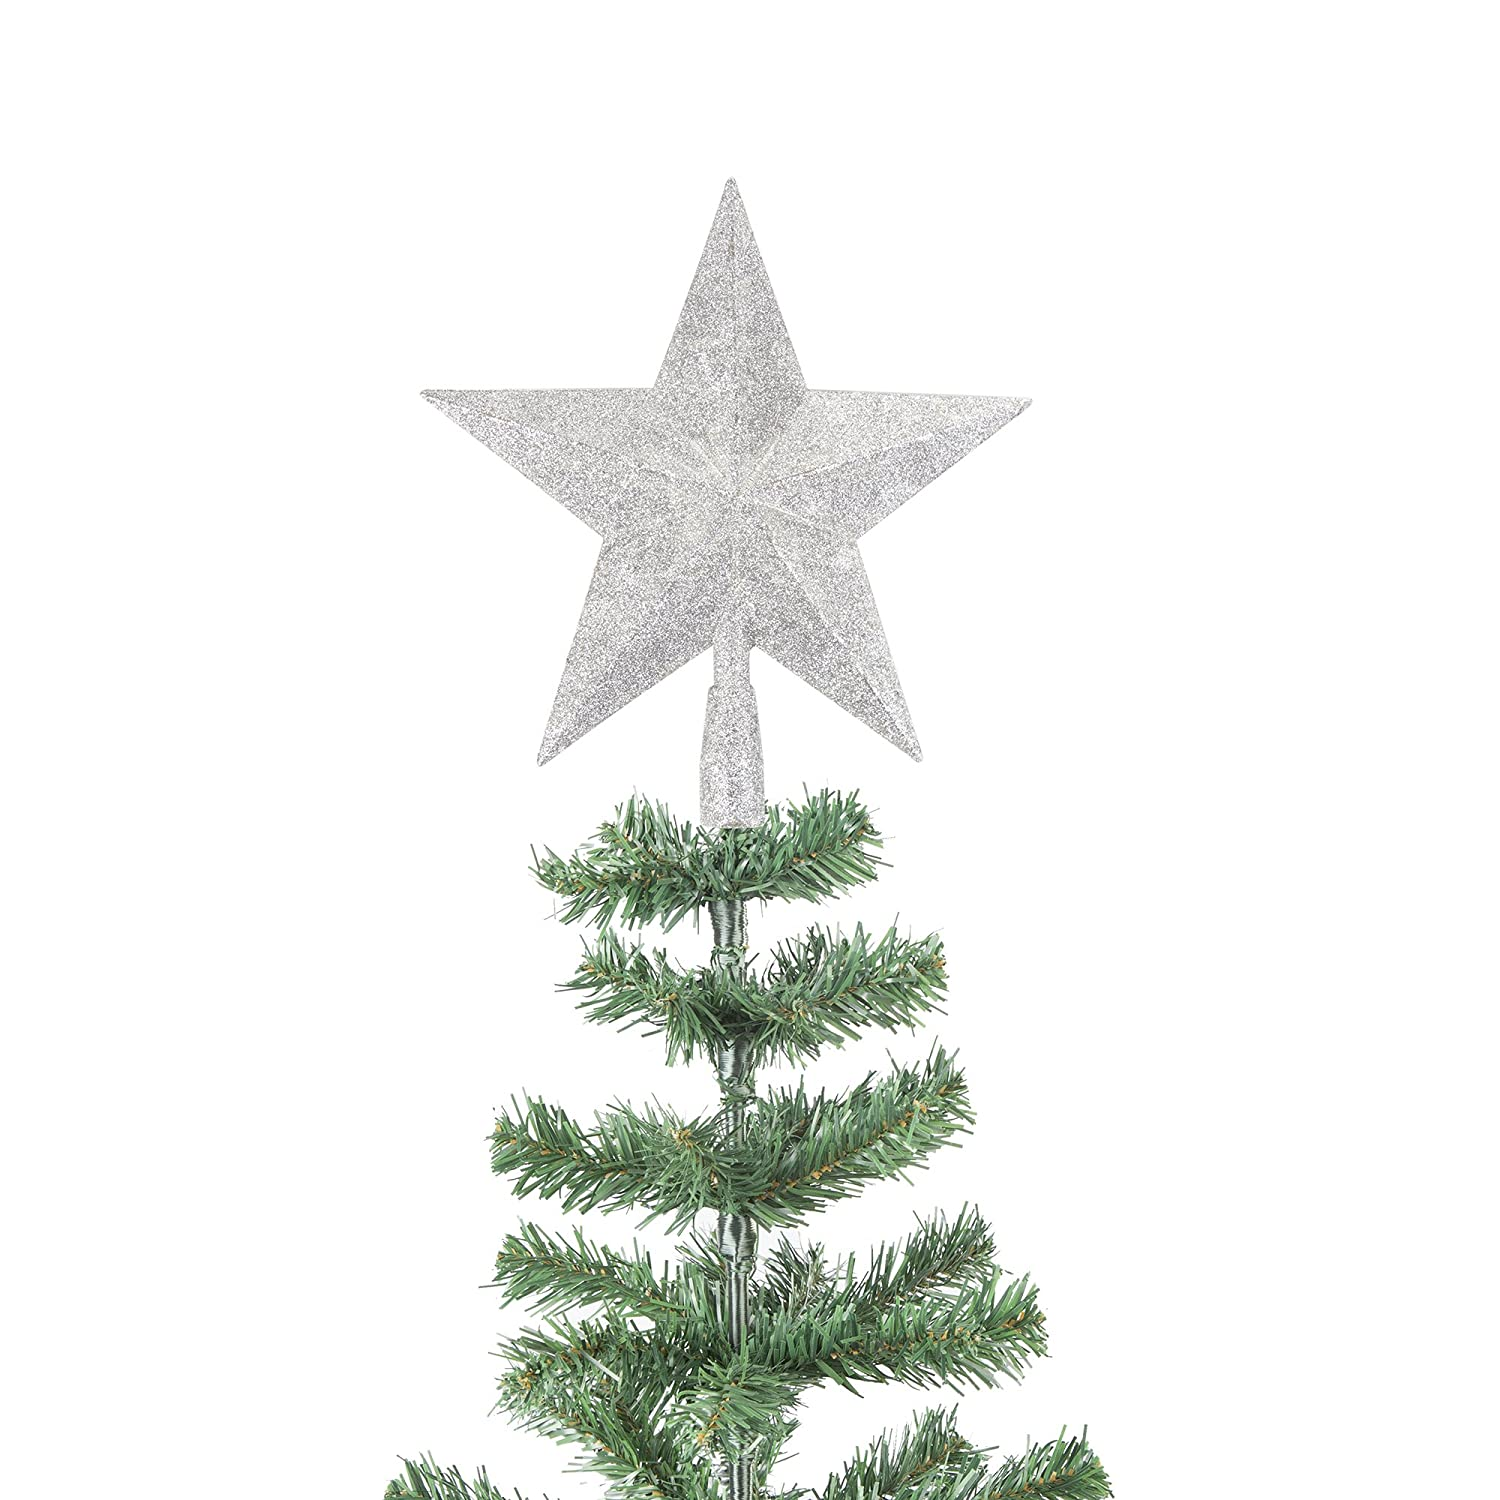 PACK OF 12 ICICLE CHRISTMAS TREE DECORATIONS Wish List For You ®